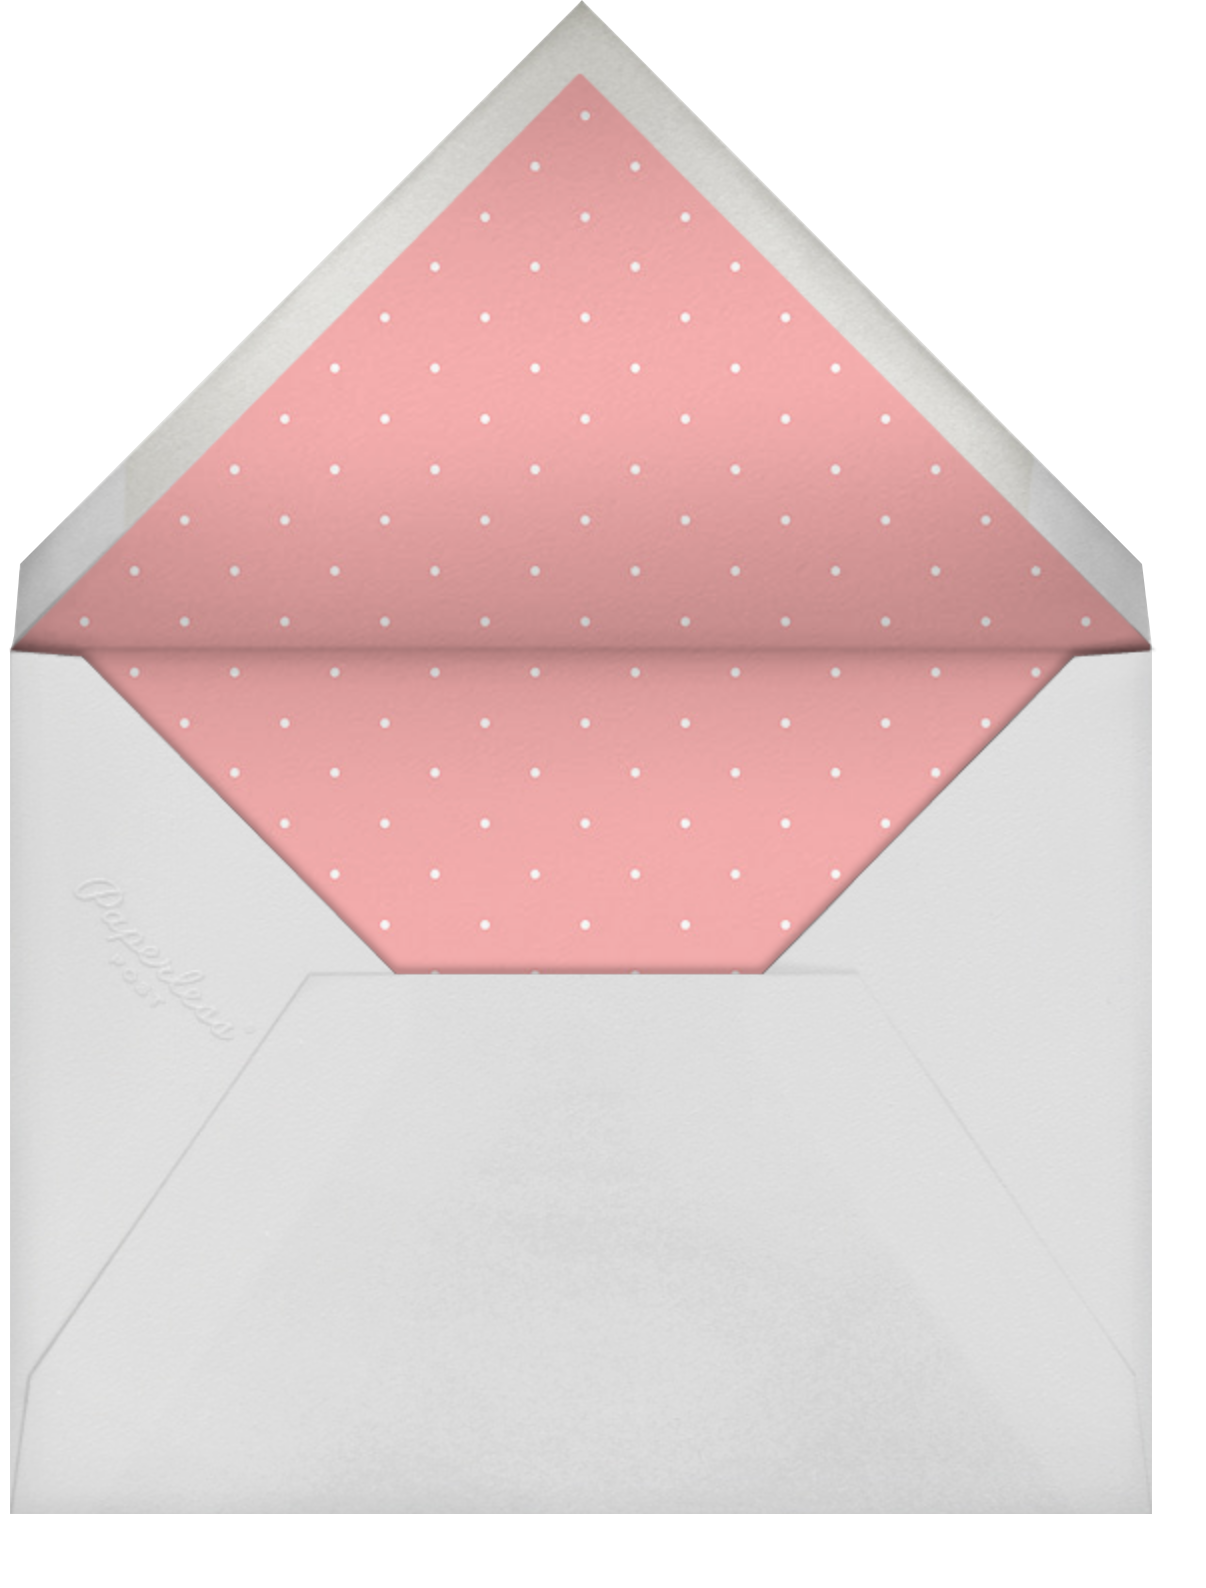 Bobbin (Save the Date) - Meringue - Paperless Post - Save the date - envelope back